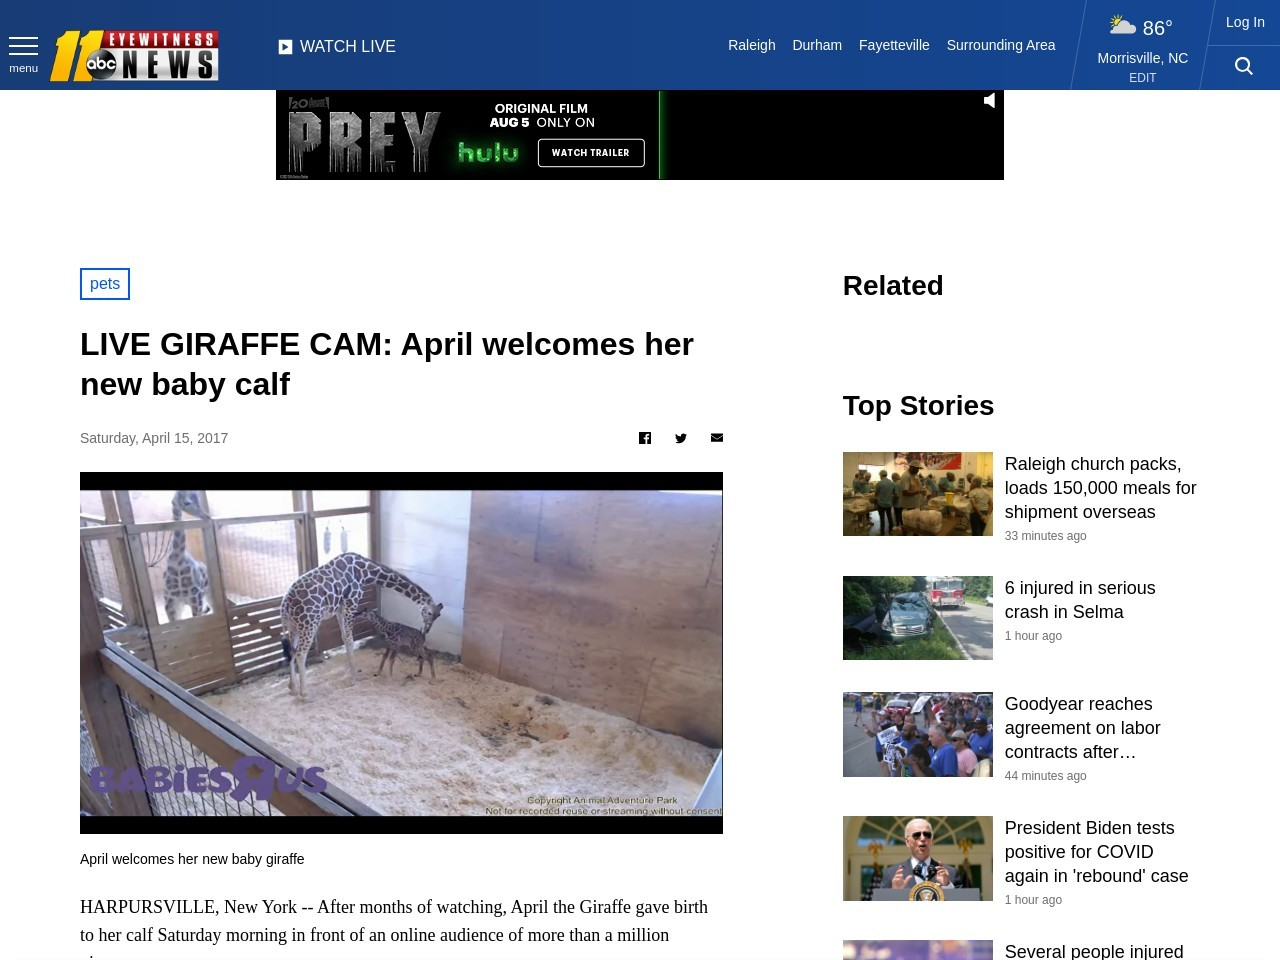 LIVE GIRAFFE CAM: April welcomes her new baby calf